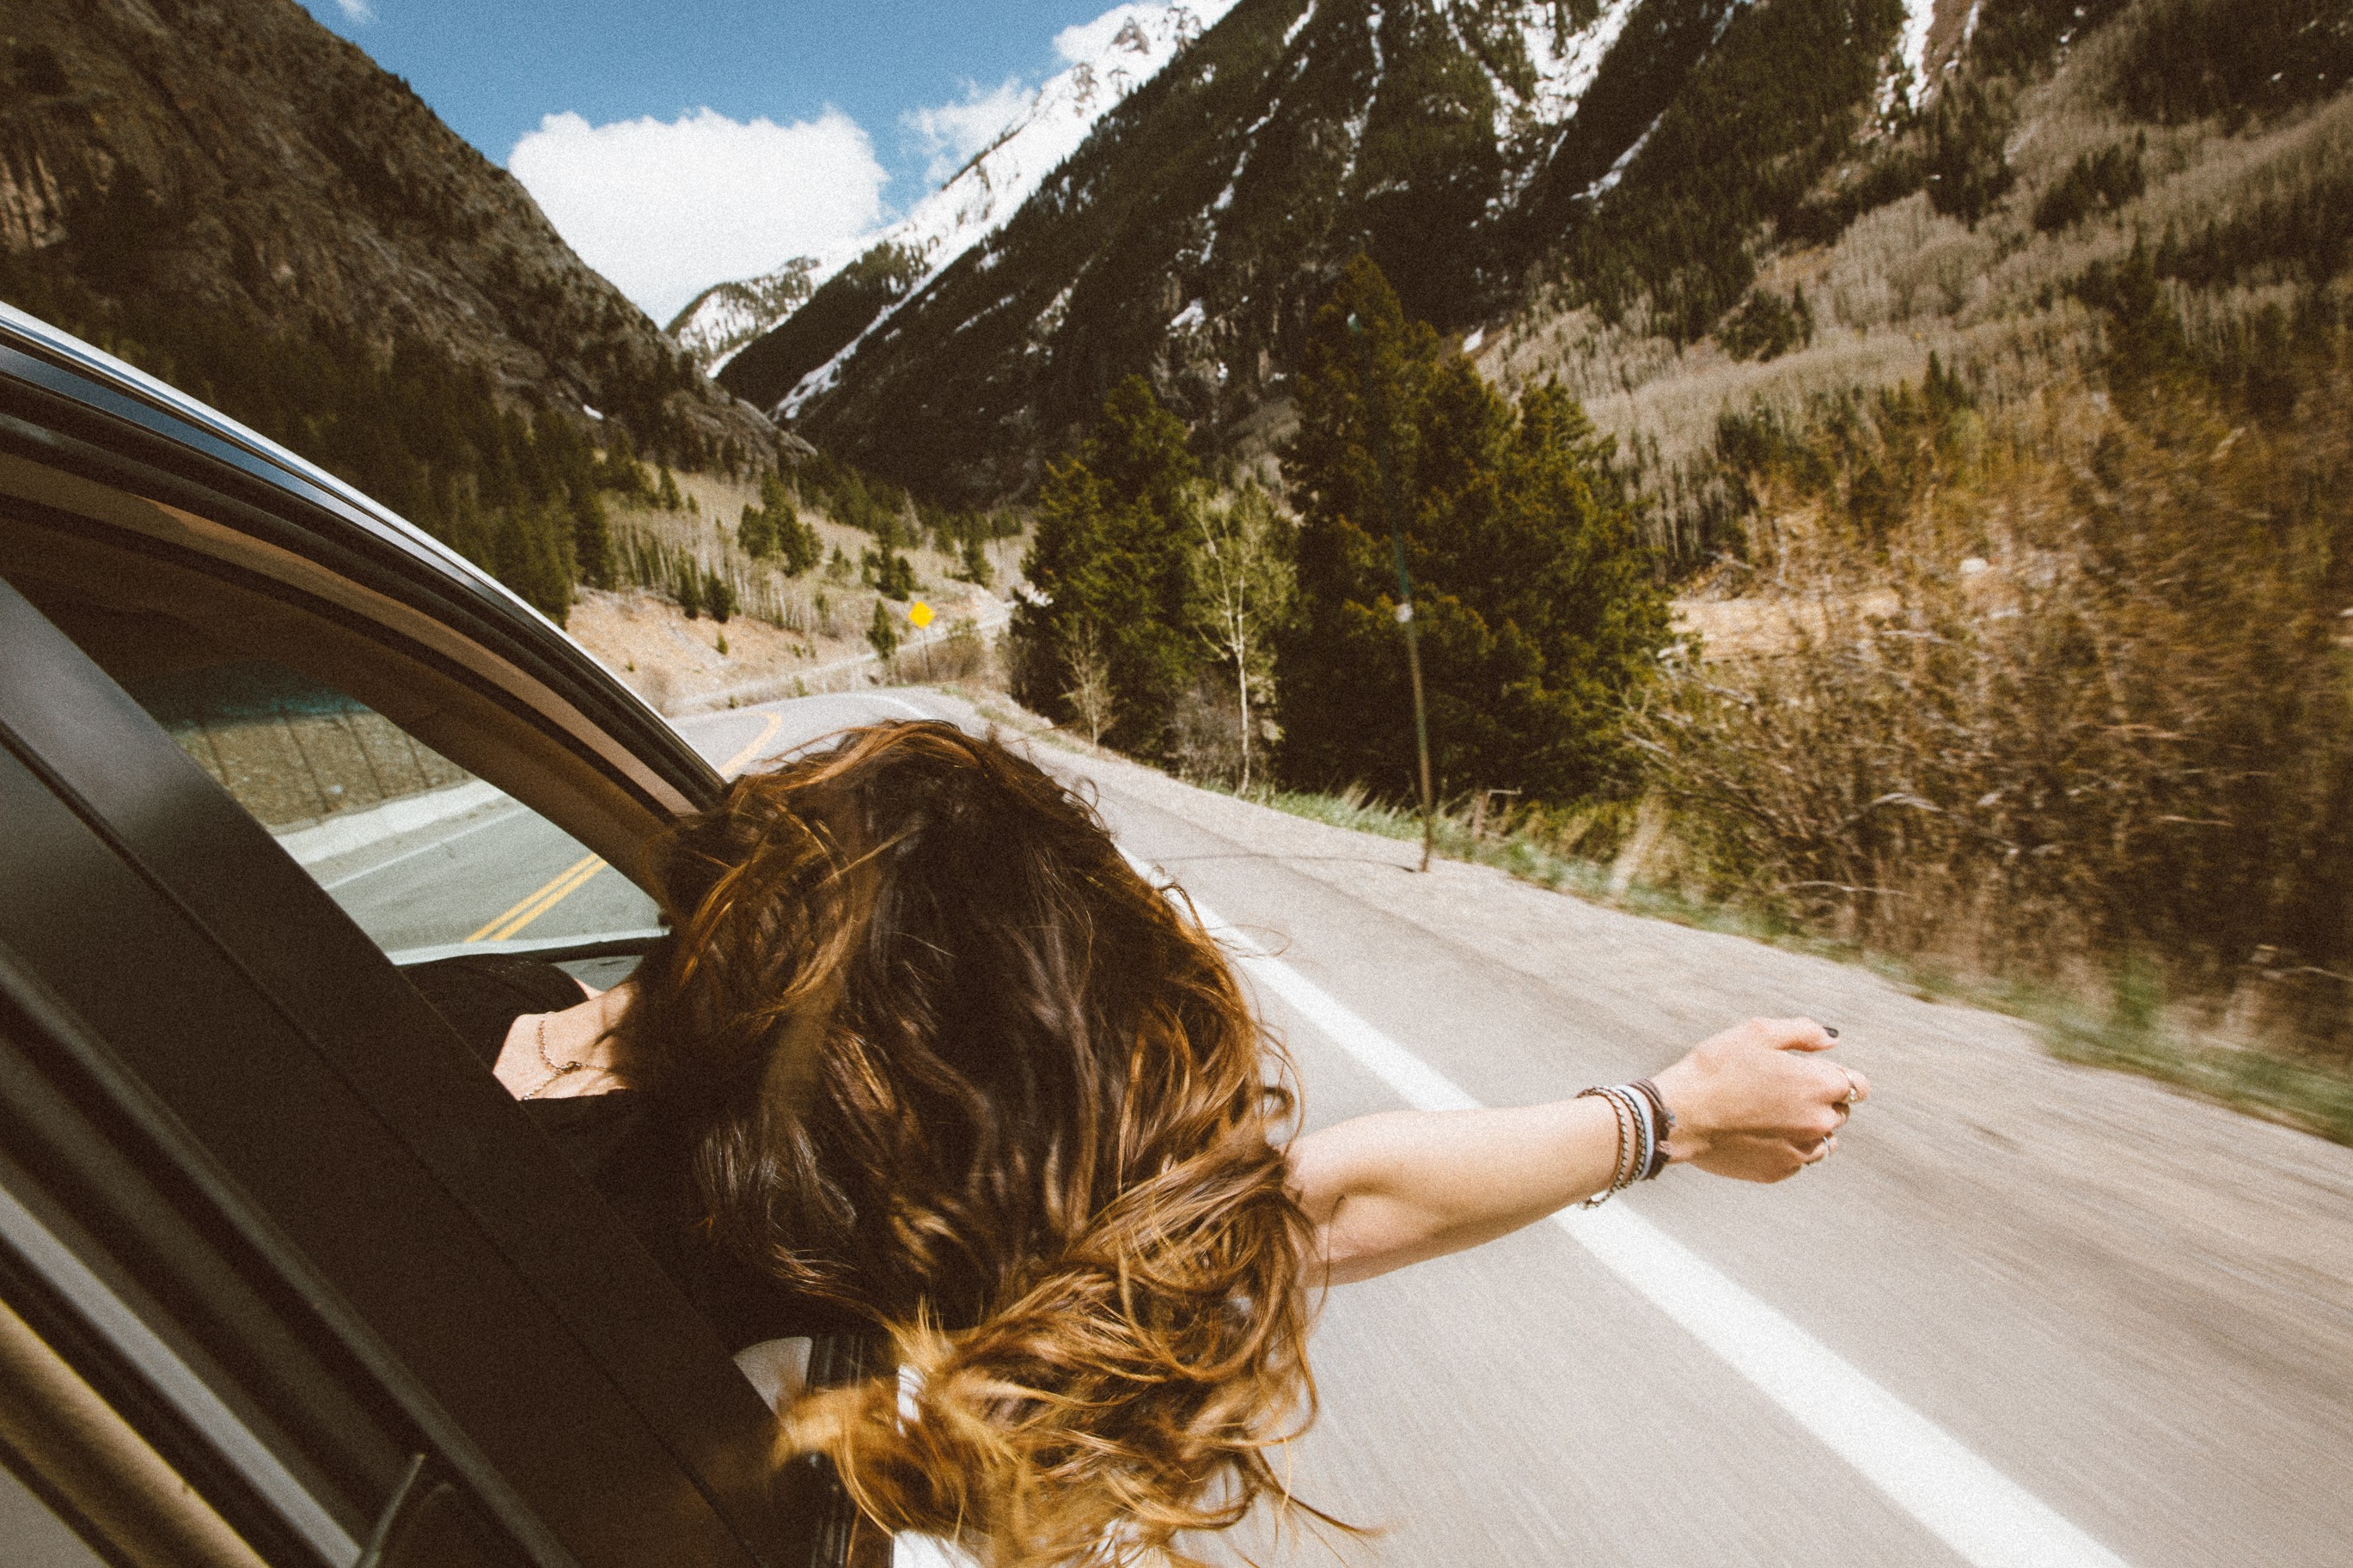 Riding in a car a girl sticks her head out the window savoring the wind through her hair and against the palm of her hand.